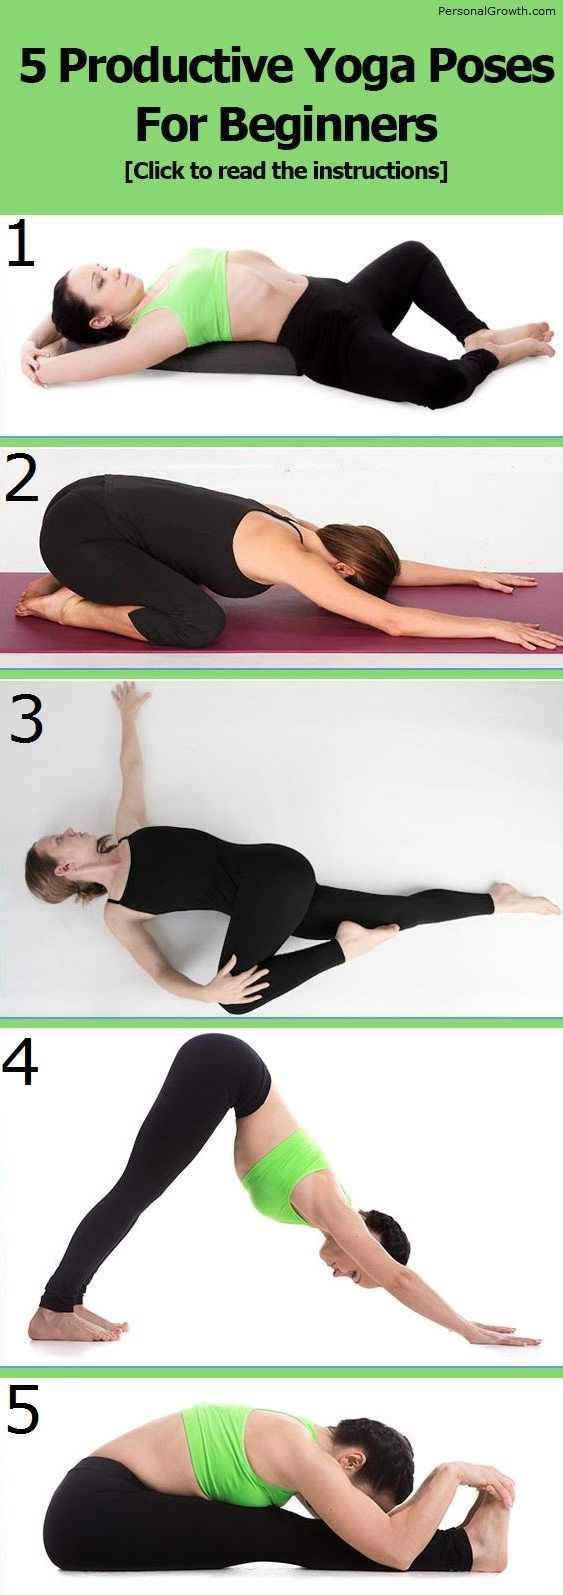 5 Productive Yoga Poses For Beginners